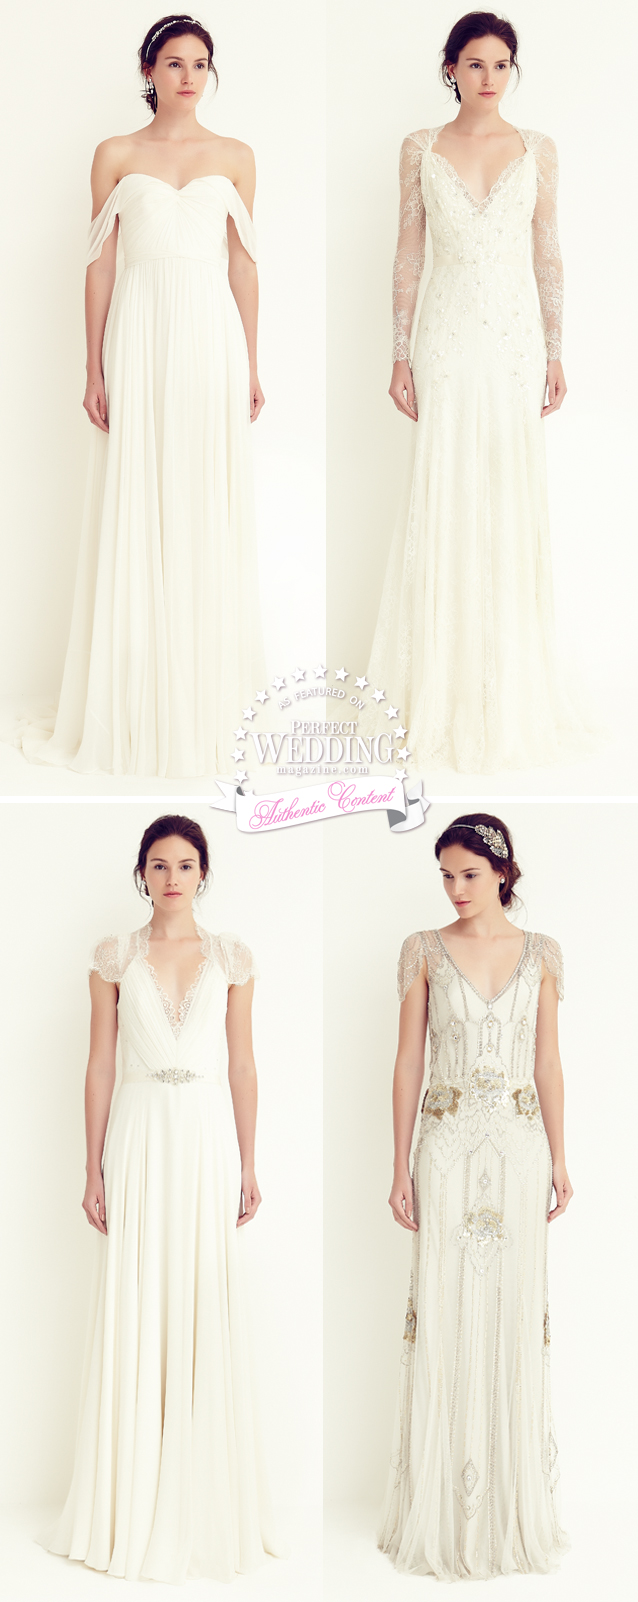 Jenny Packham, Jenny Packham Bridal, Jenny Packham Petite Collection, Perfect Wedding Magazine, Bridal Fashion